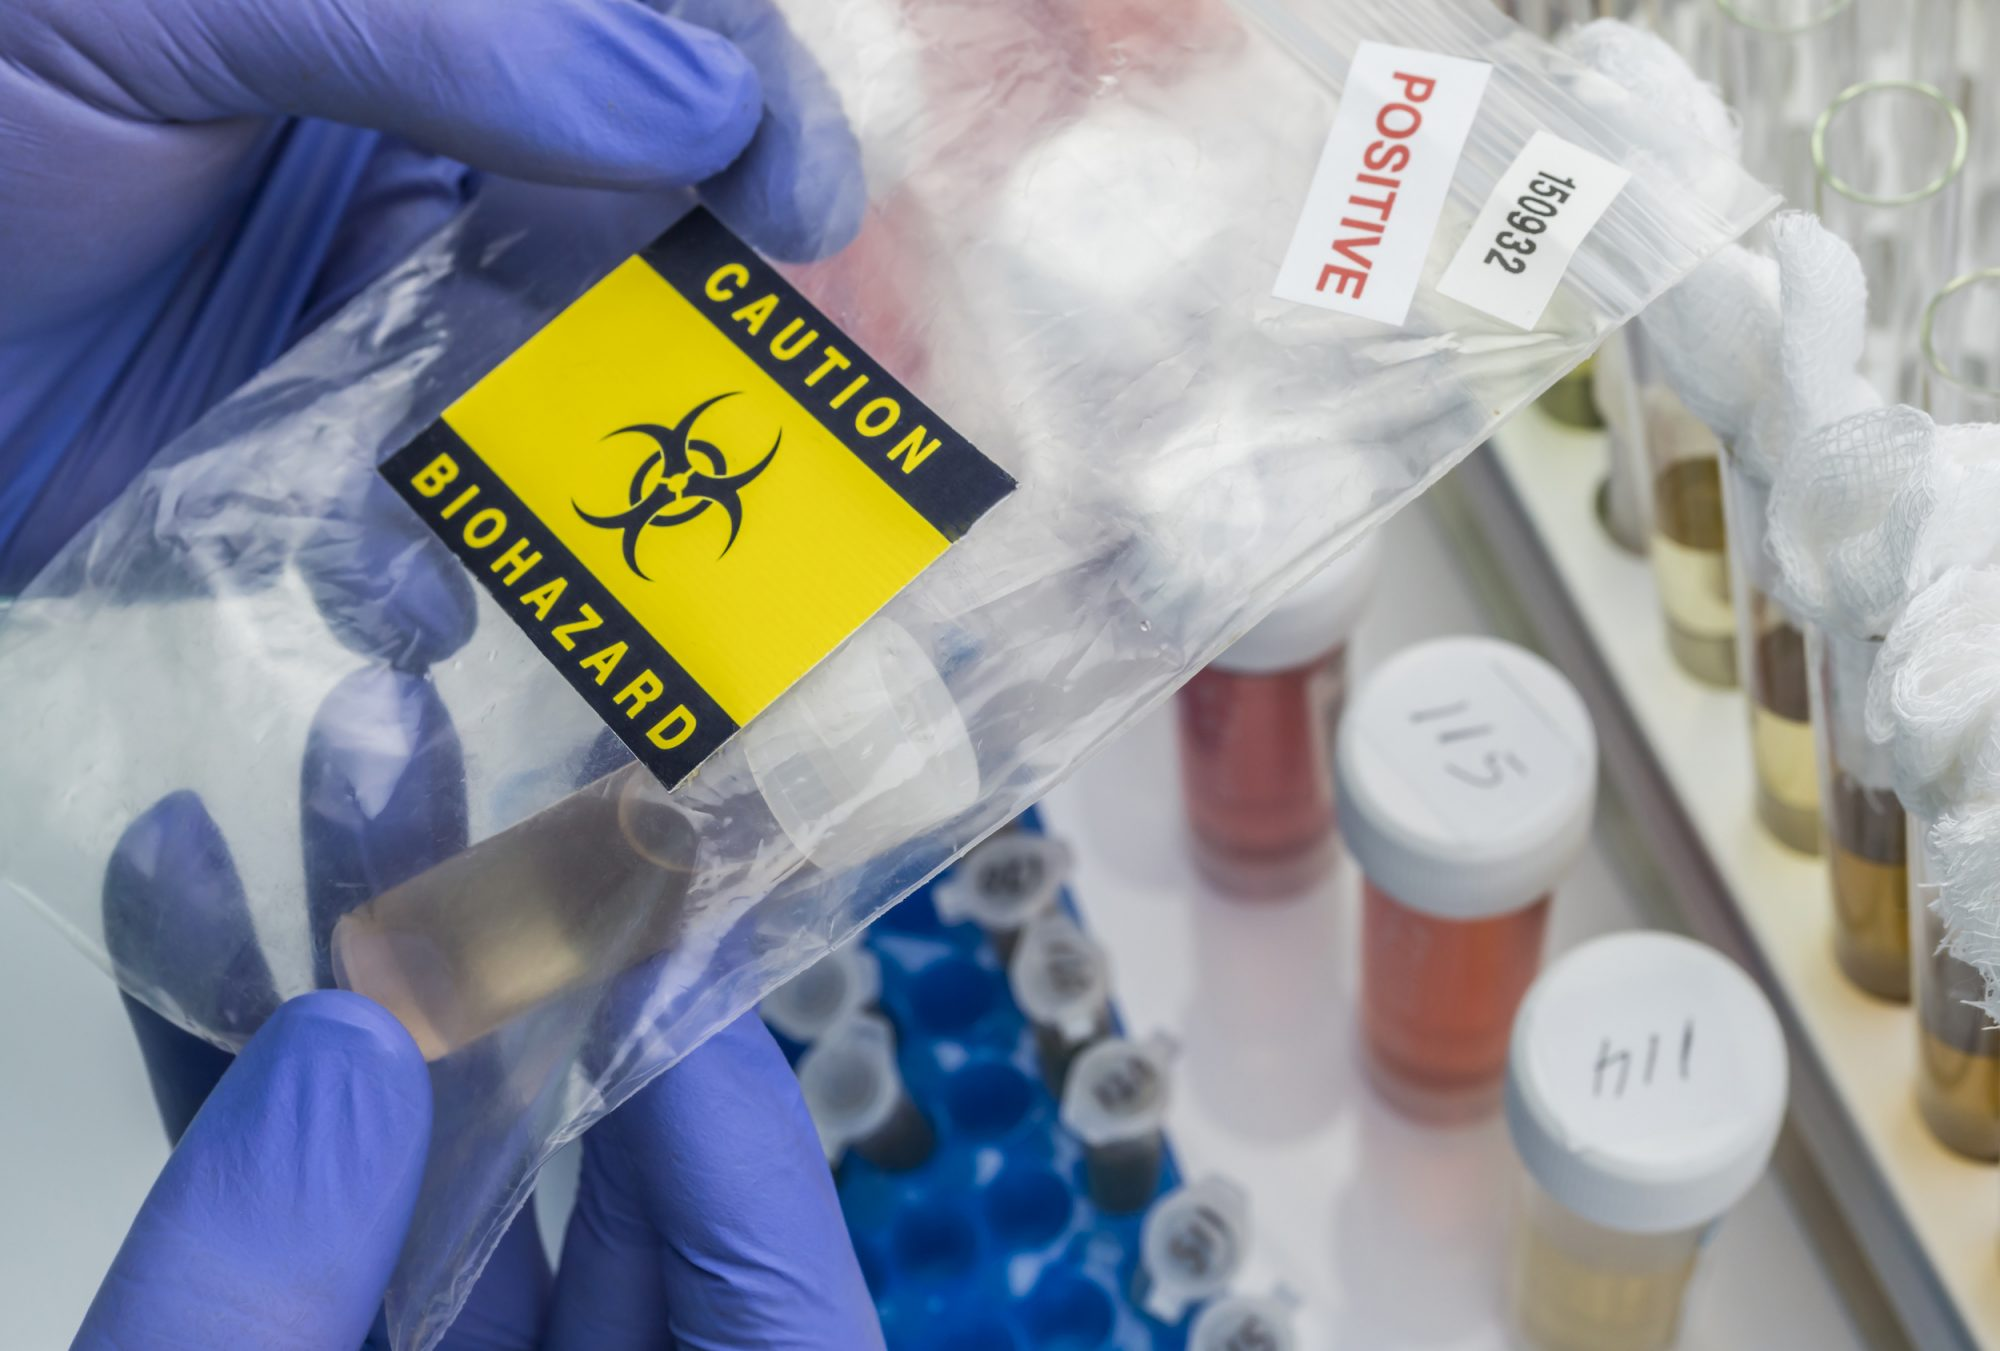 Vaccine rumours debunked: Microchips, 'altered DNA' and more